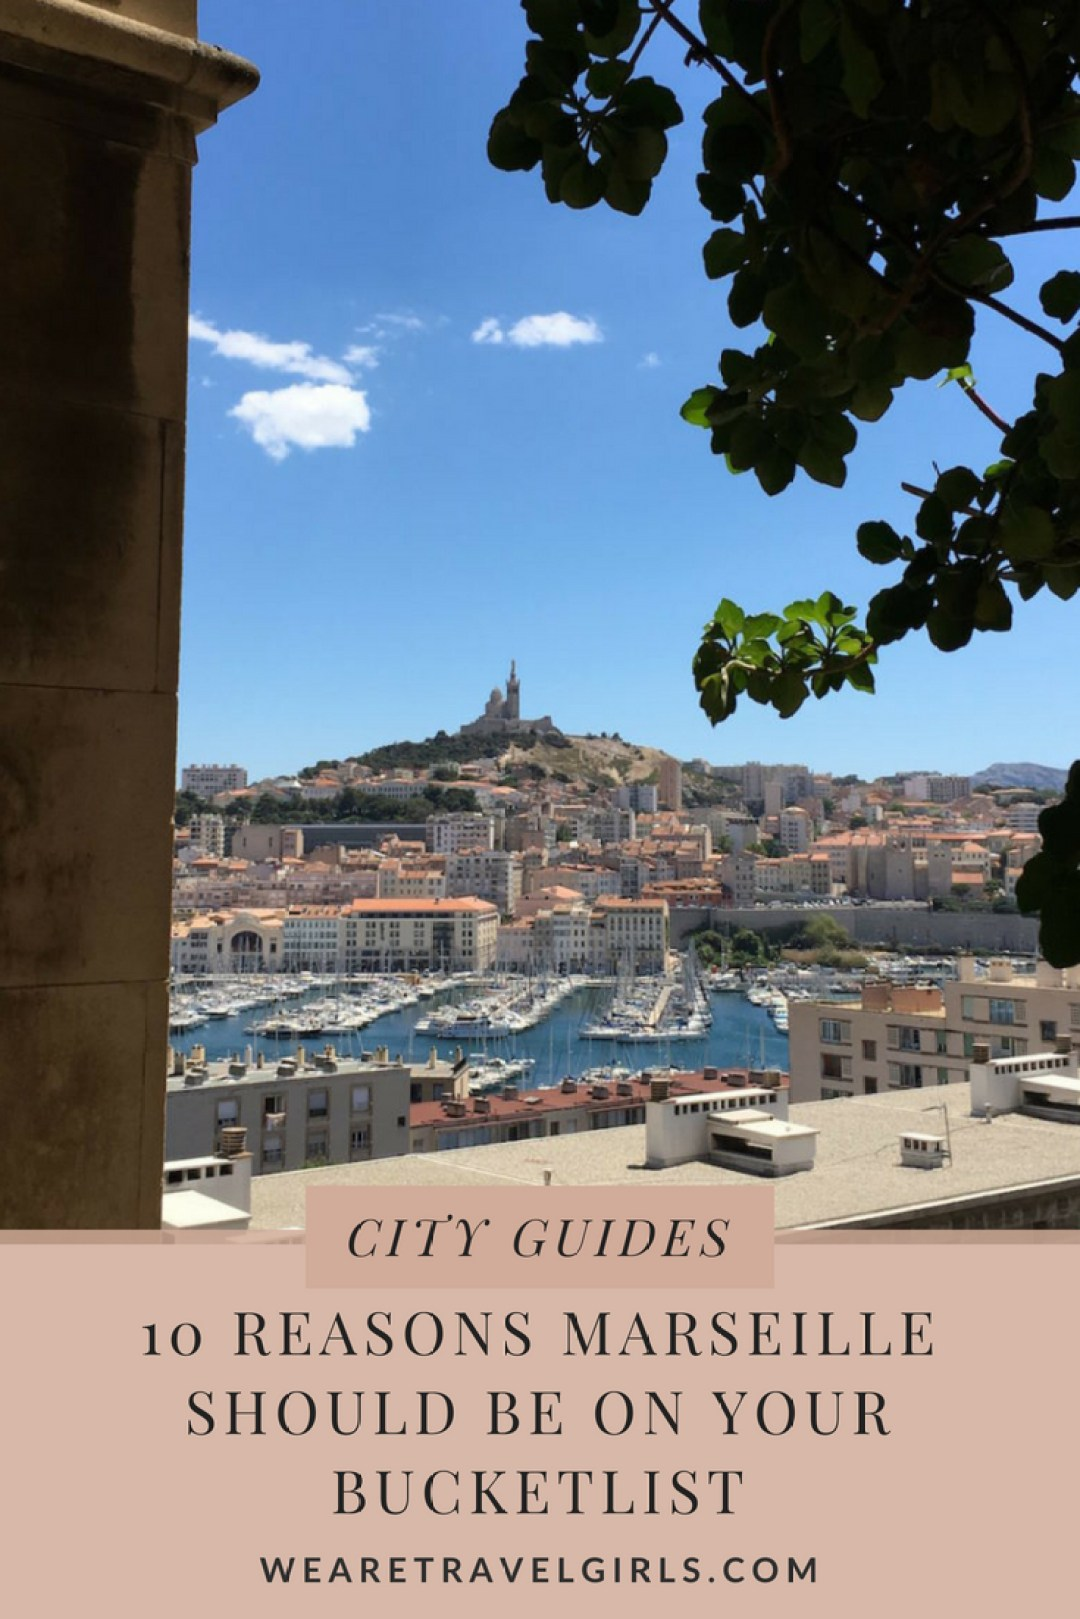 10 REASONS MARSEILLE SHOULD BE ON YOUR BUCKETLIST